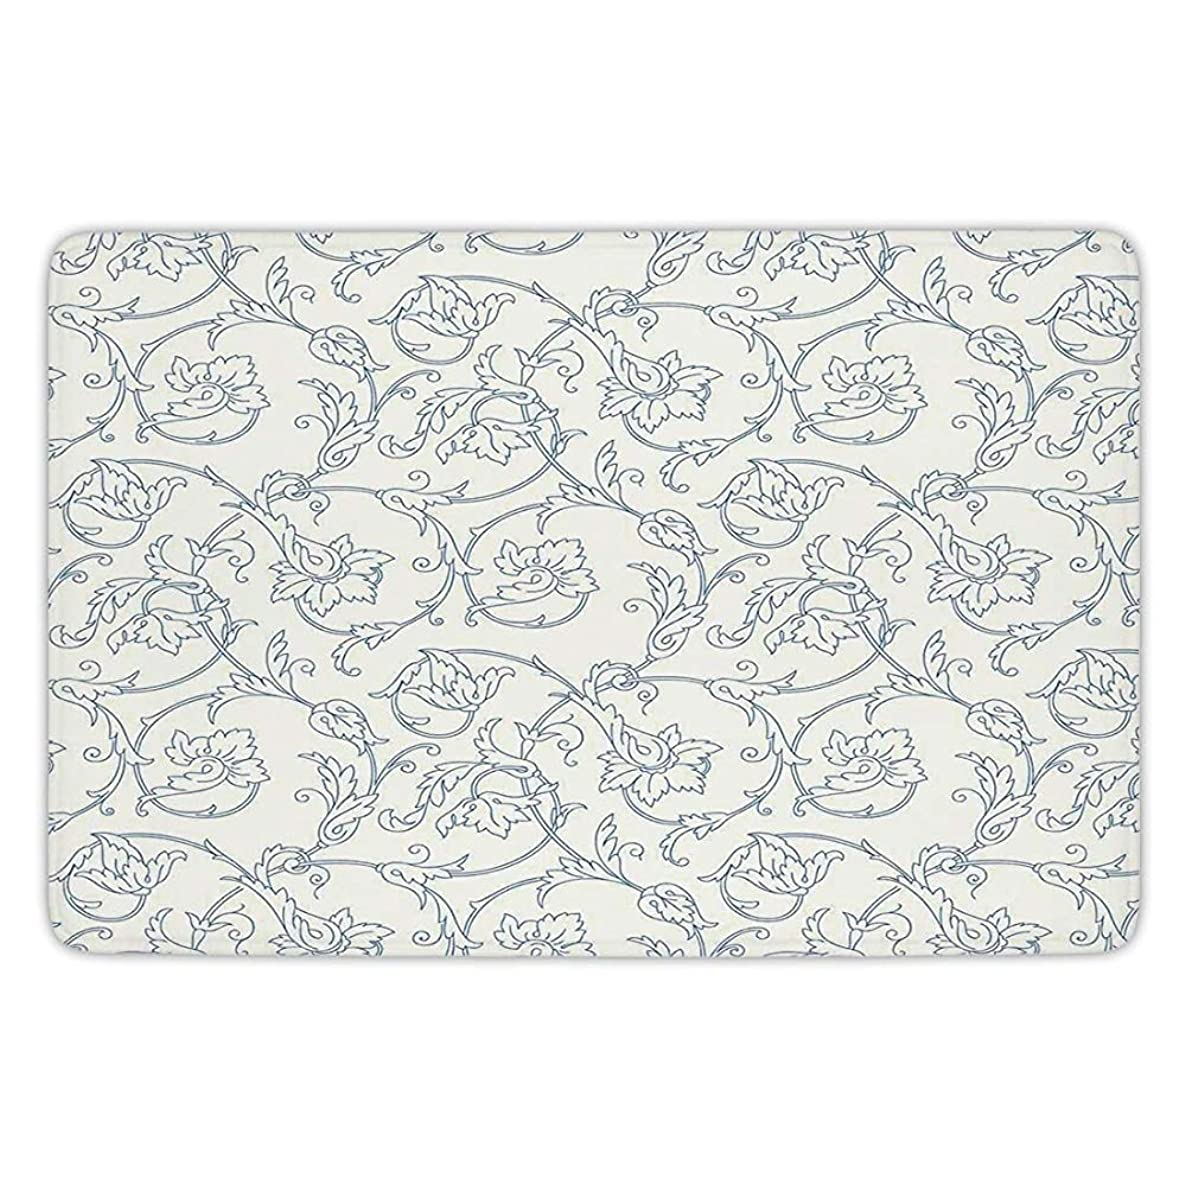 K0k2t0 Bathroom Bath Rug Kitchen Floor Mat Carpet,Floral,Flower Orchids Bohemian Style Vintage Petals Vines Pattern French Country Style,Blue White,Flannel Microfiber Non-Slip Soft Absorbent